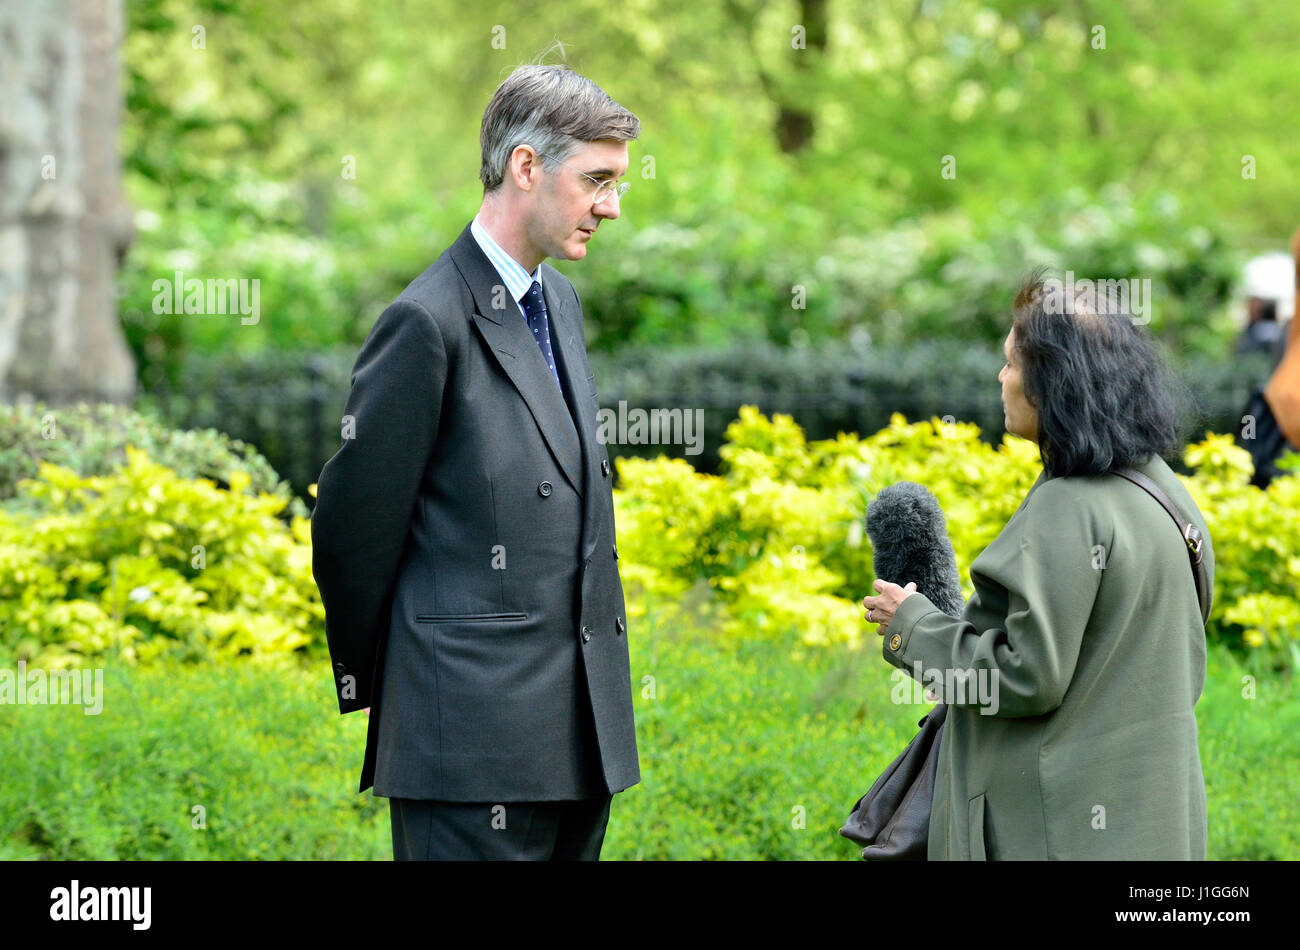 Jacob Rees-Mogg MP (Con: North East Somerset) interviewed on College Green, Westminster 18th April 2017 shortly - Stock Image